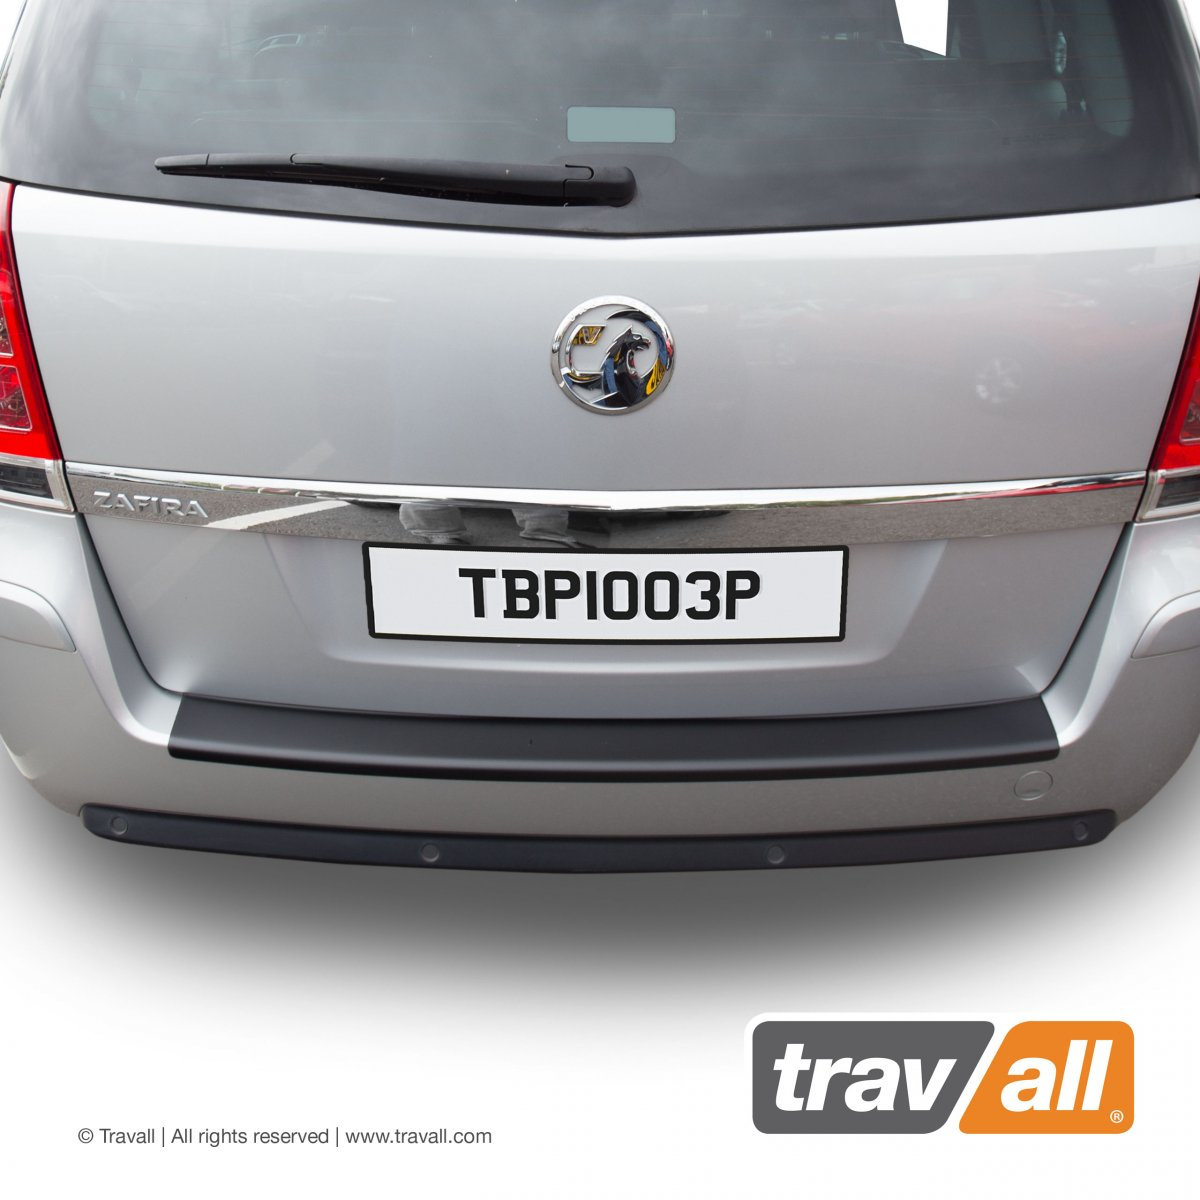 Travall® PROTECTOR-Plastique lisse pour Opel/Vauxhall Zafira (2005-2014)